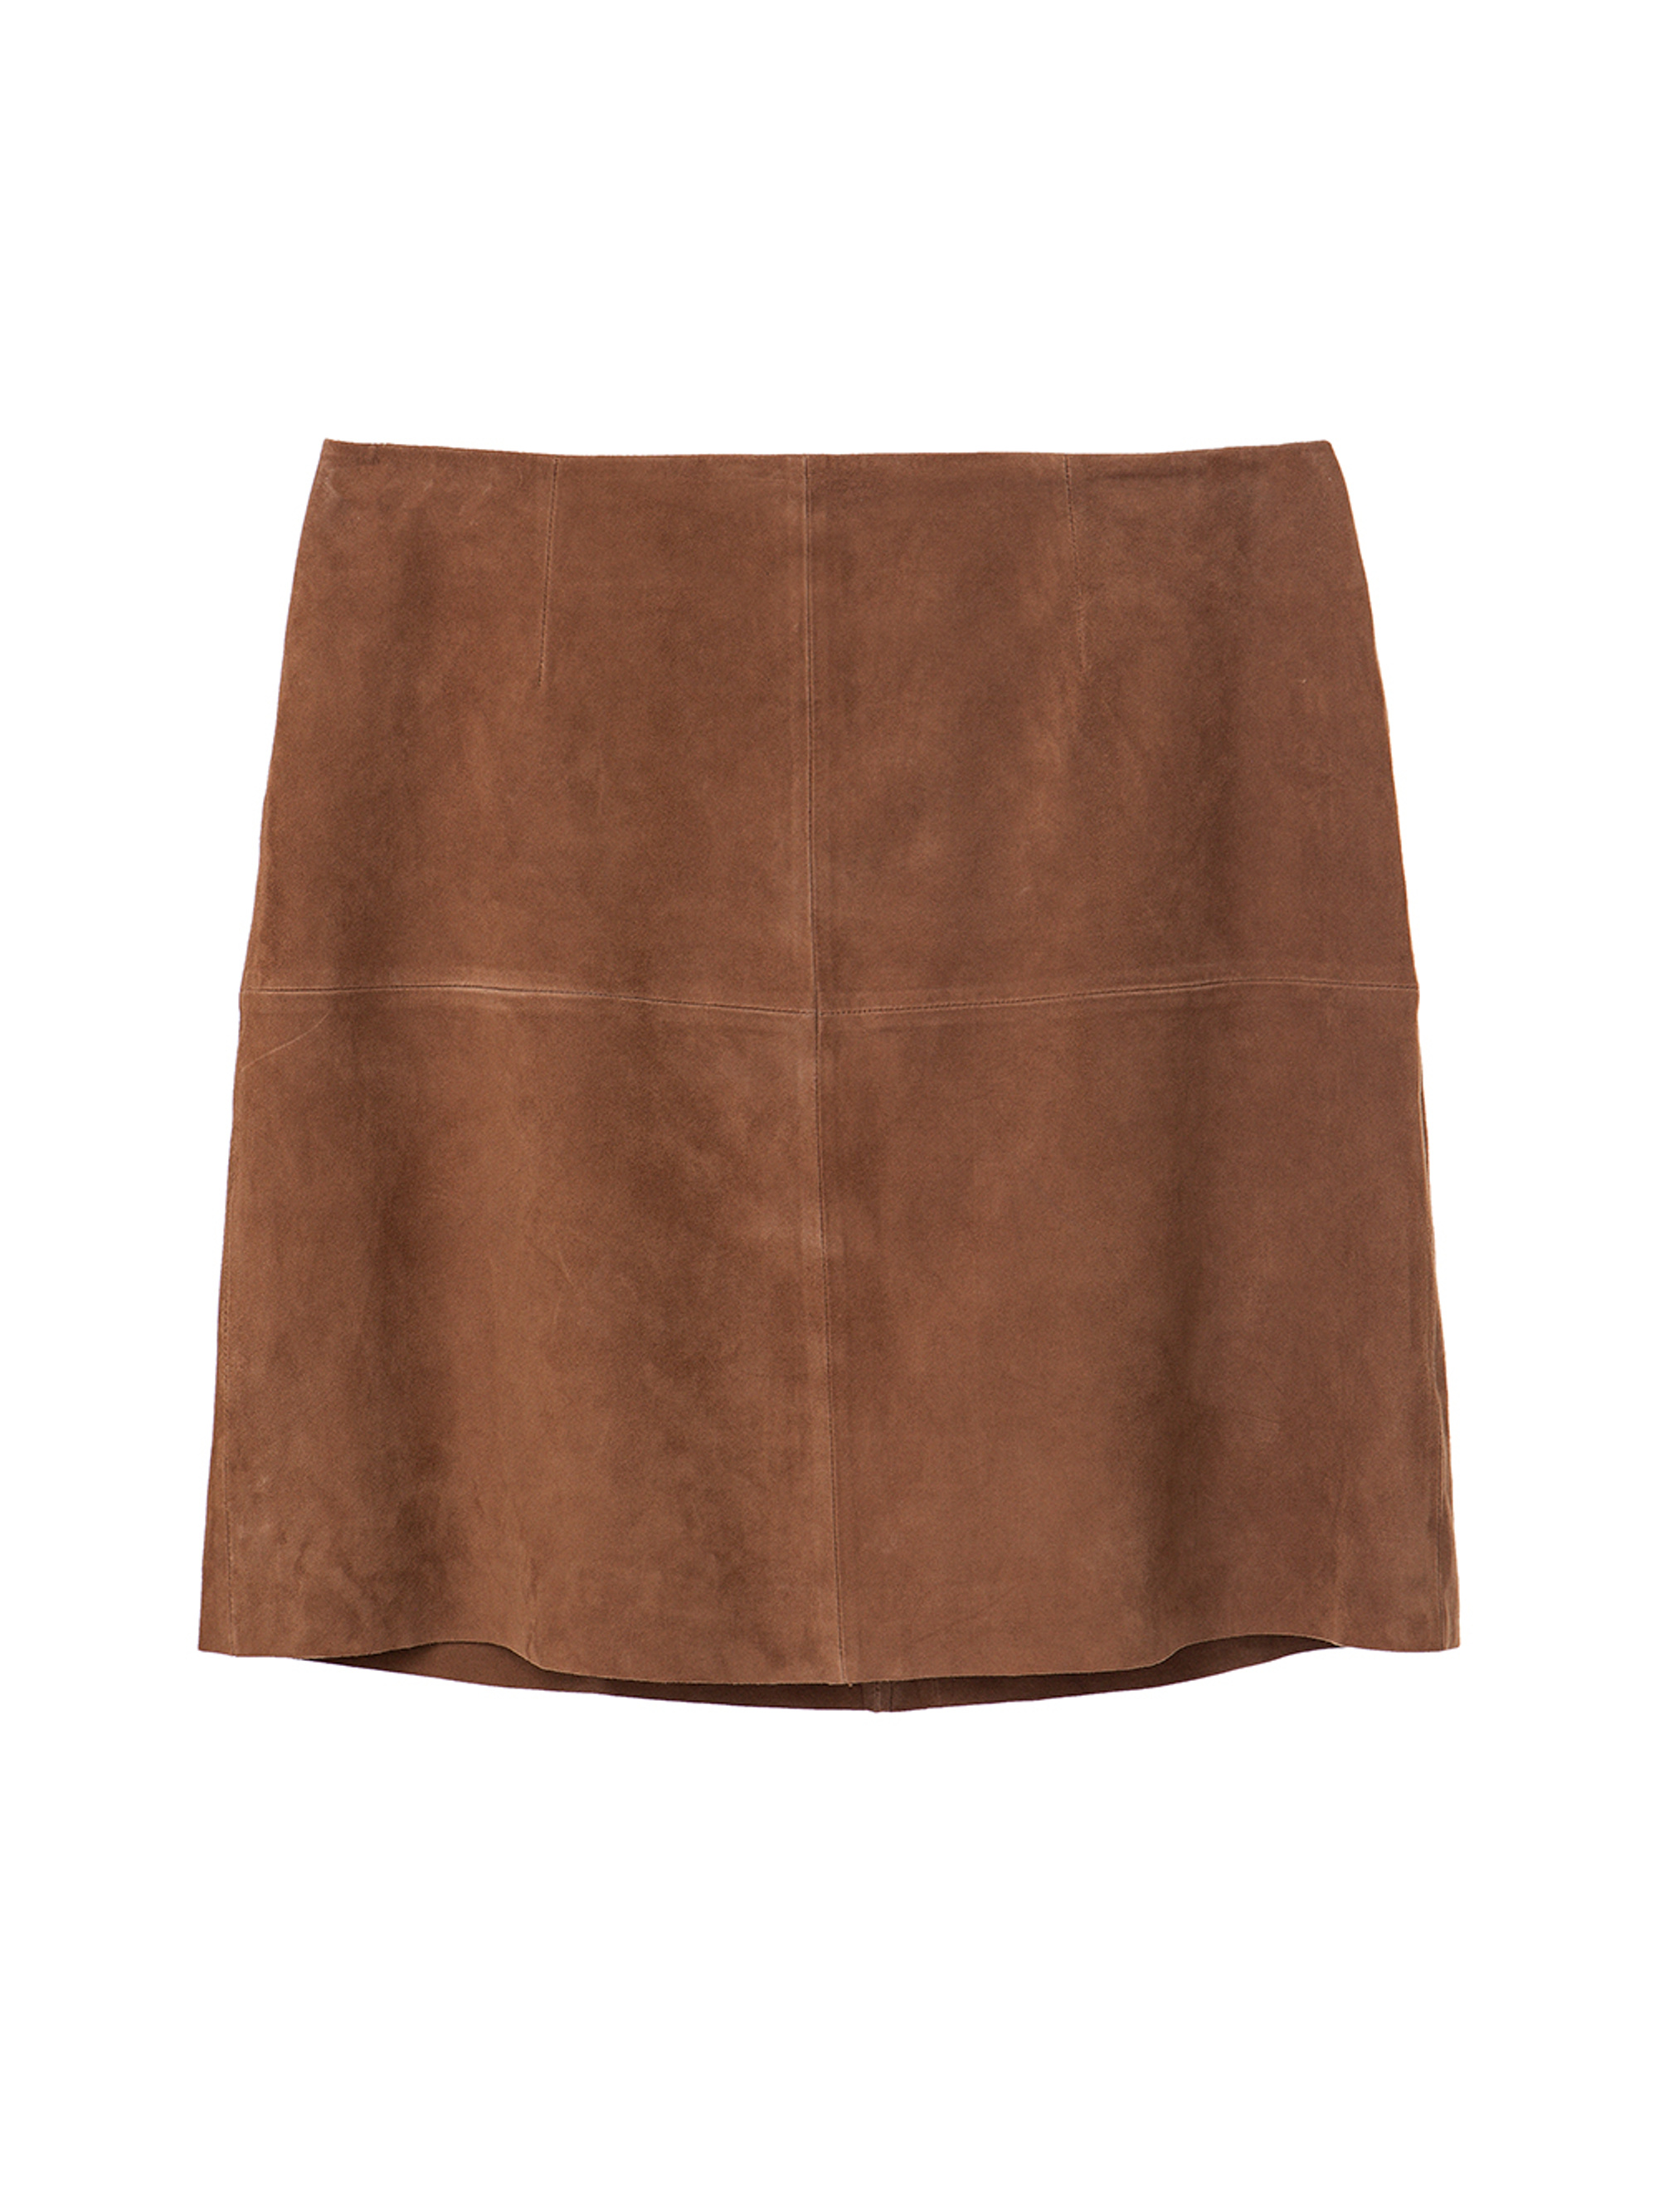 Kylie Suede Skirt